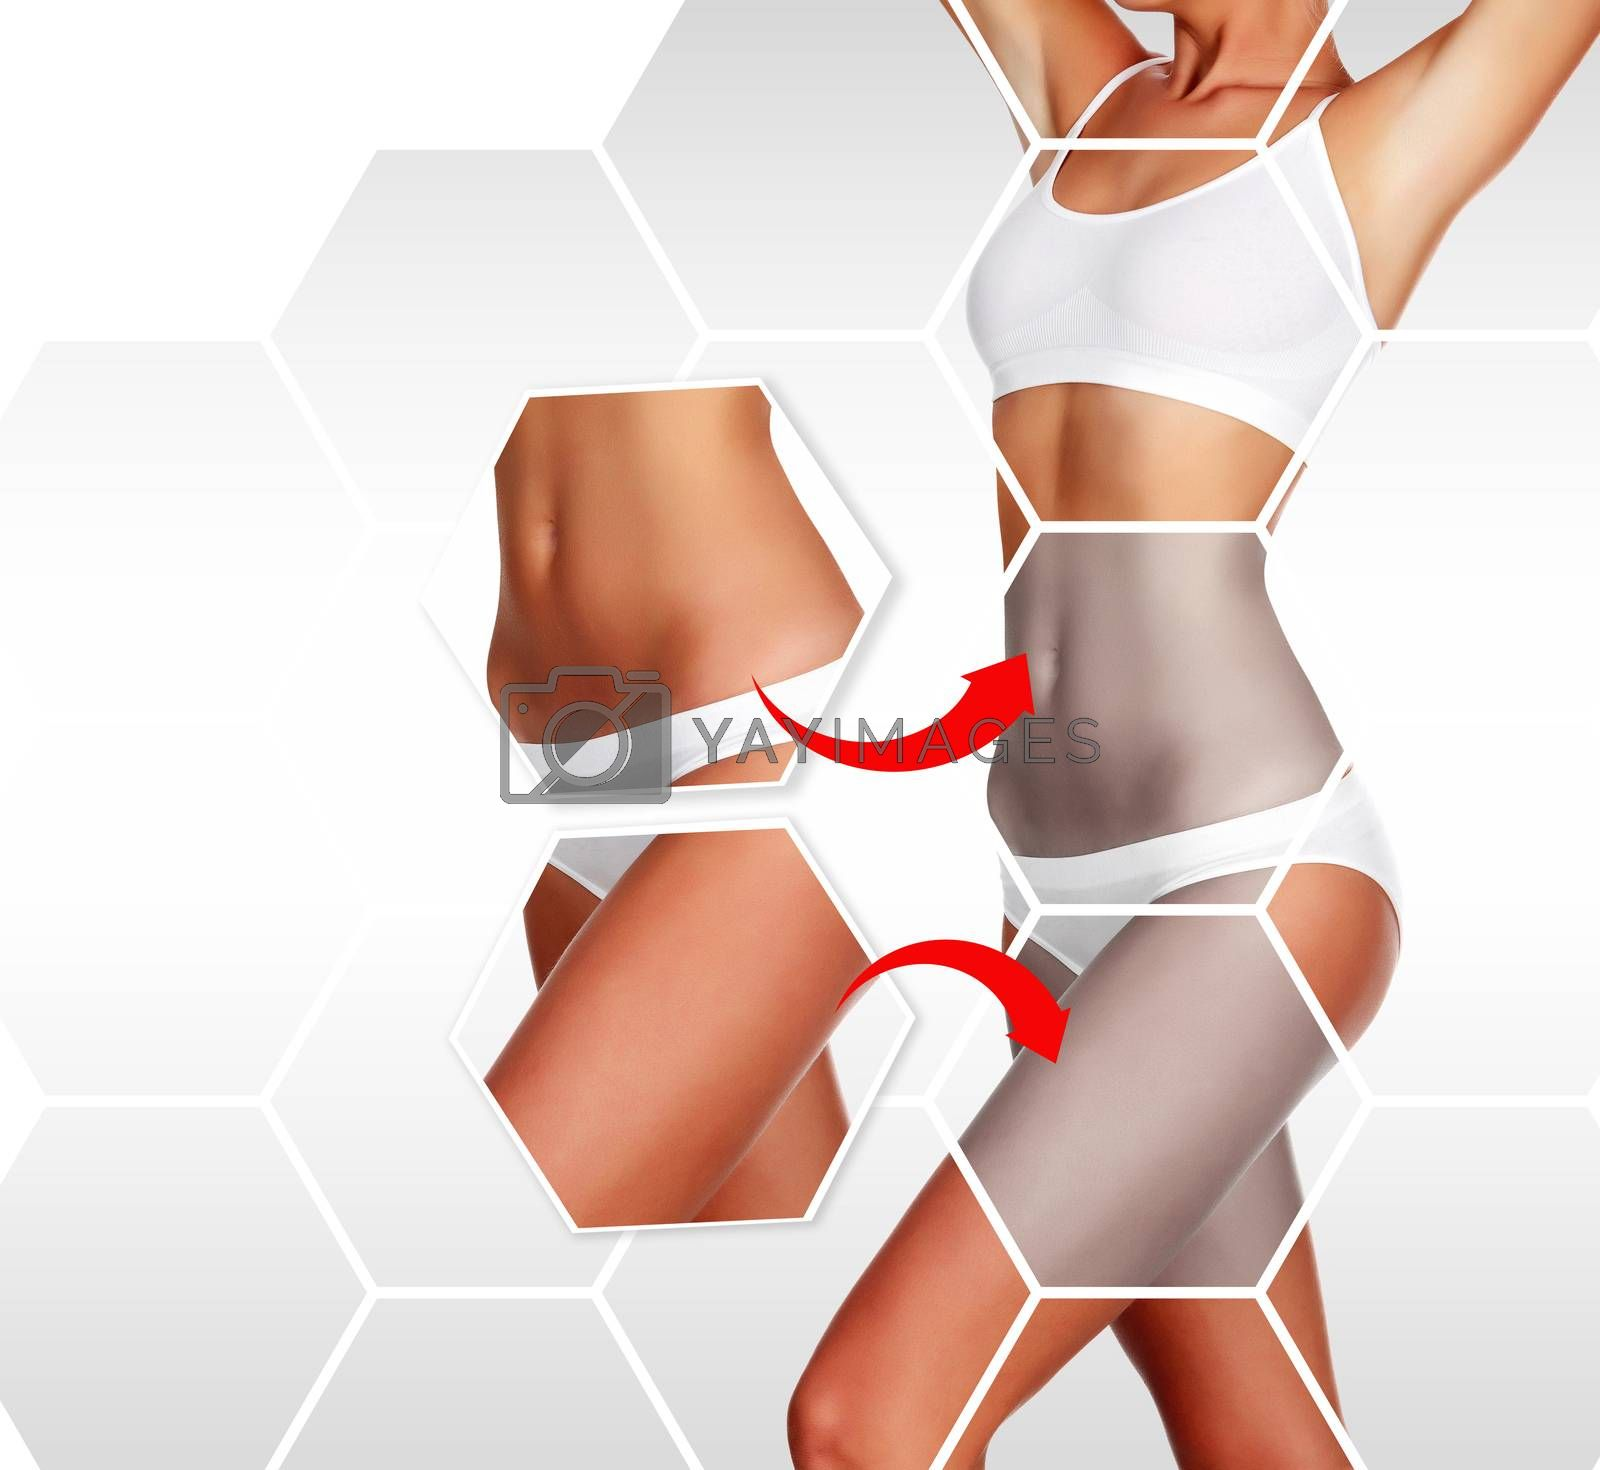 Beautiful woman's body against a grey background with copyspace. Body treatment concept